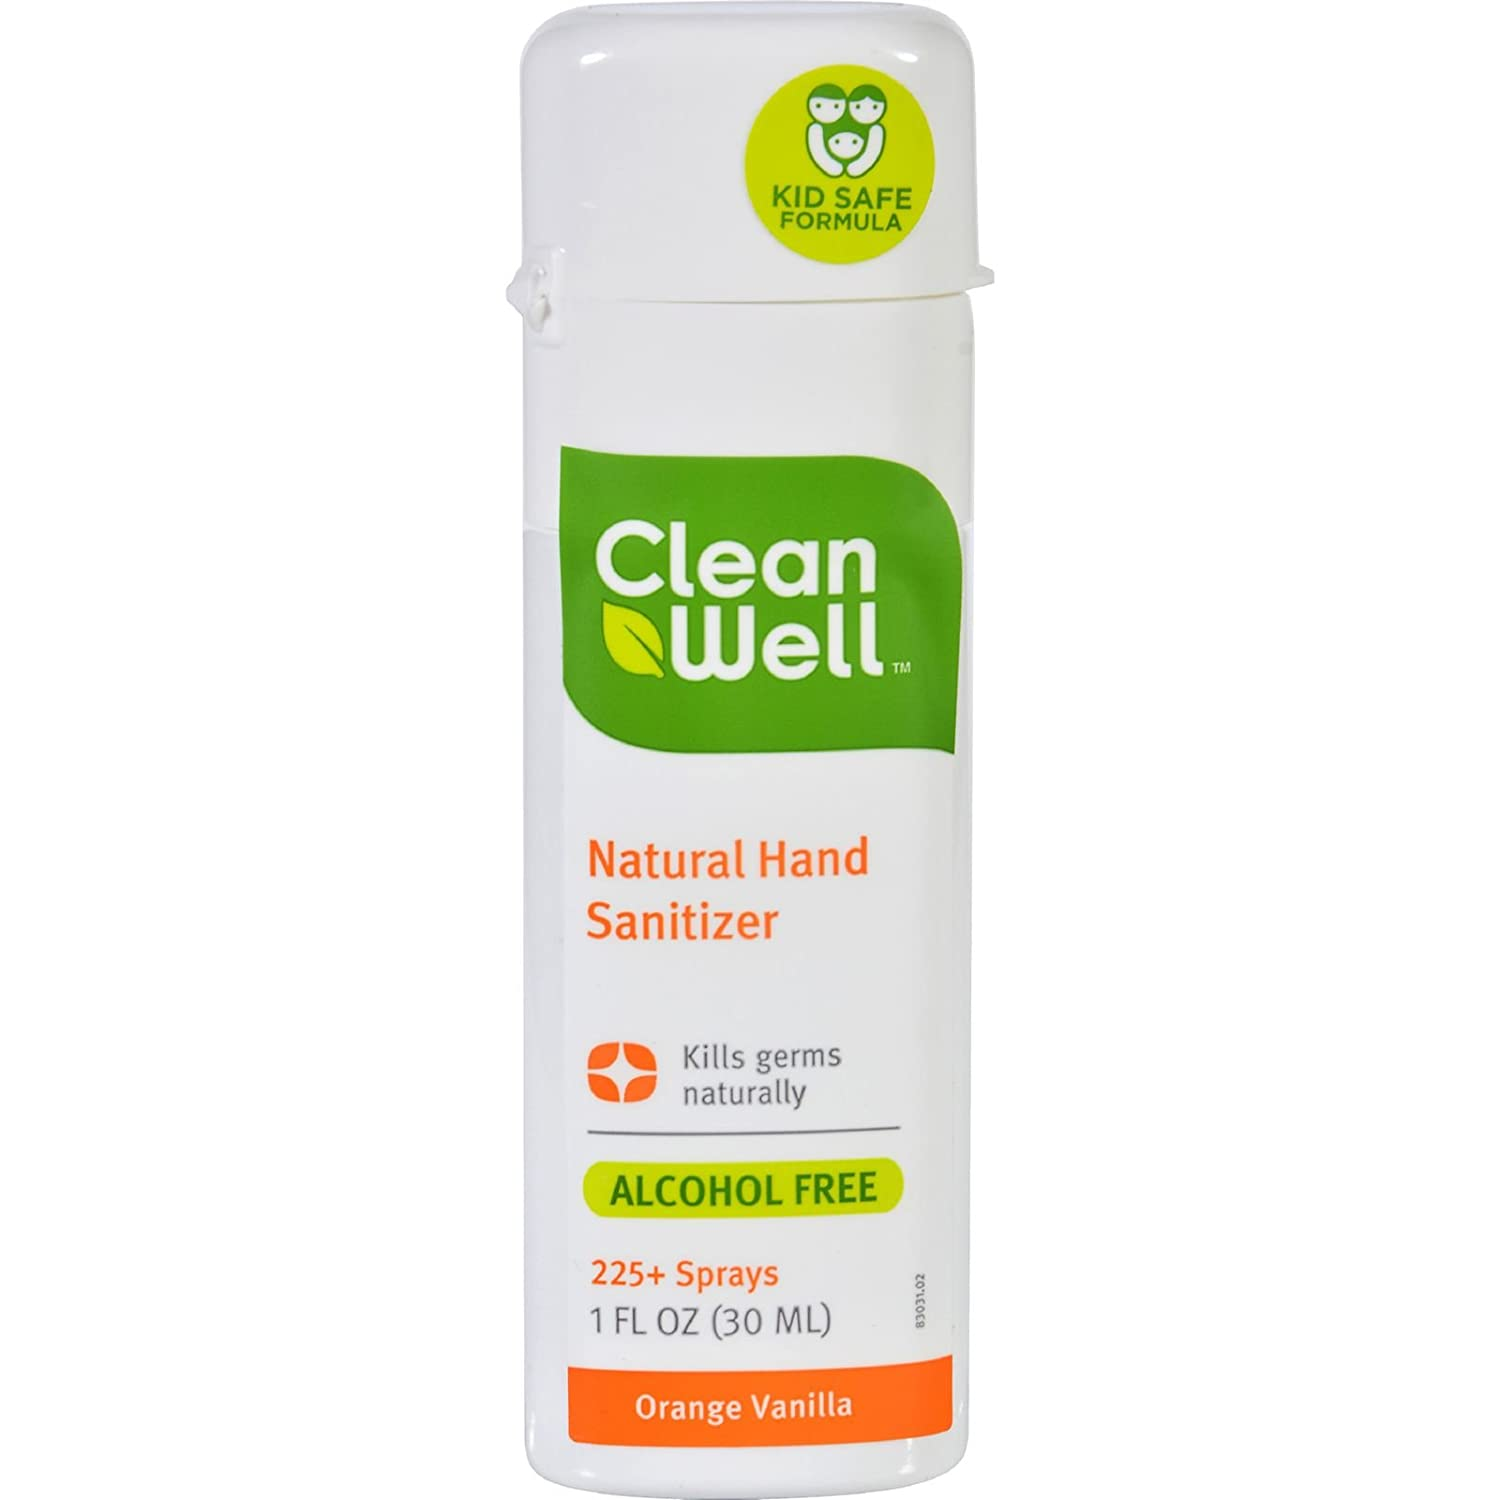 Cleanwell CLW-59772P4 Hand Sanitizer Spray , Orange Vanilla, 1 oz. This multi-pack contains 4. TRTAZ11A